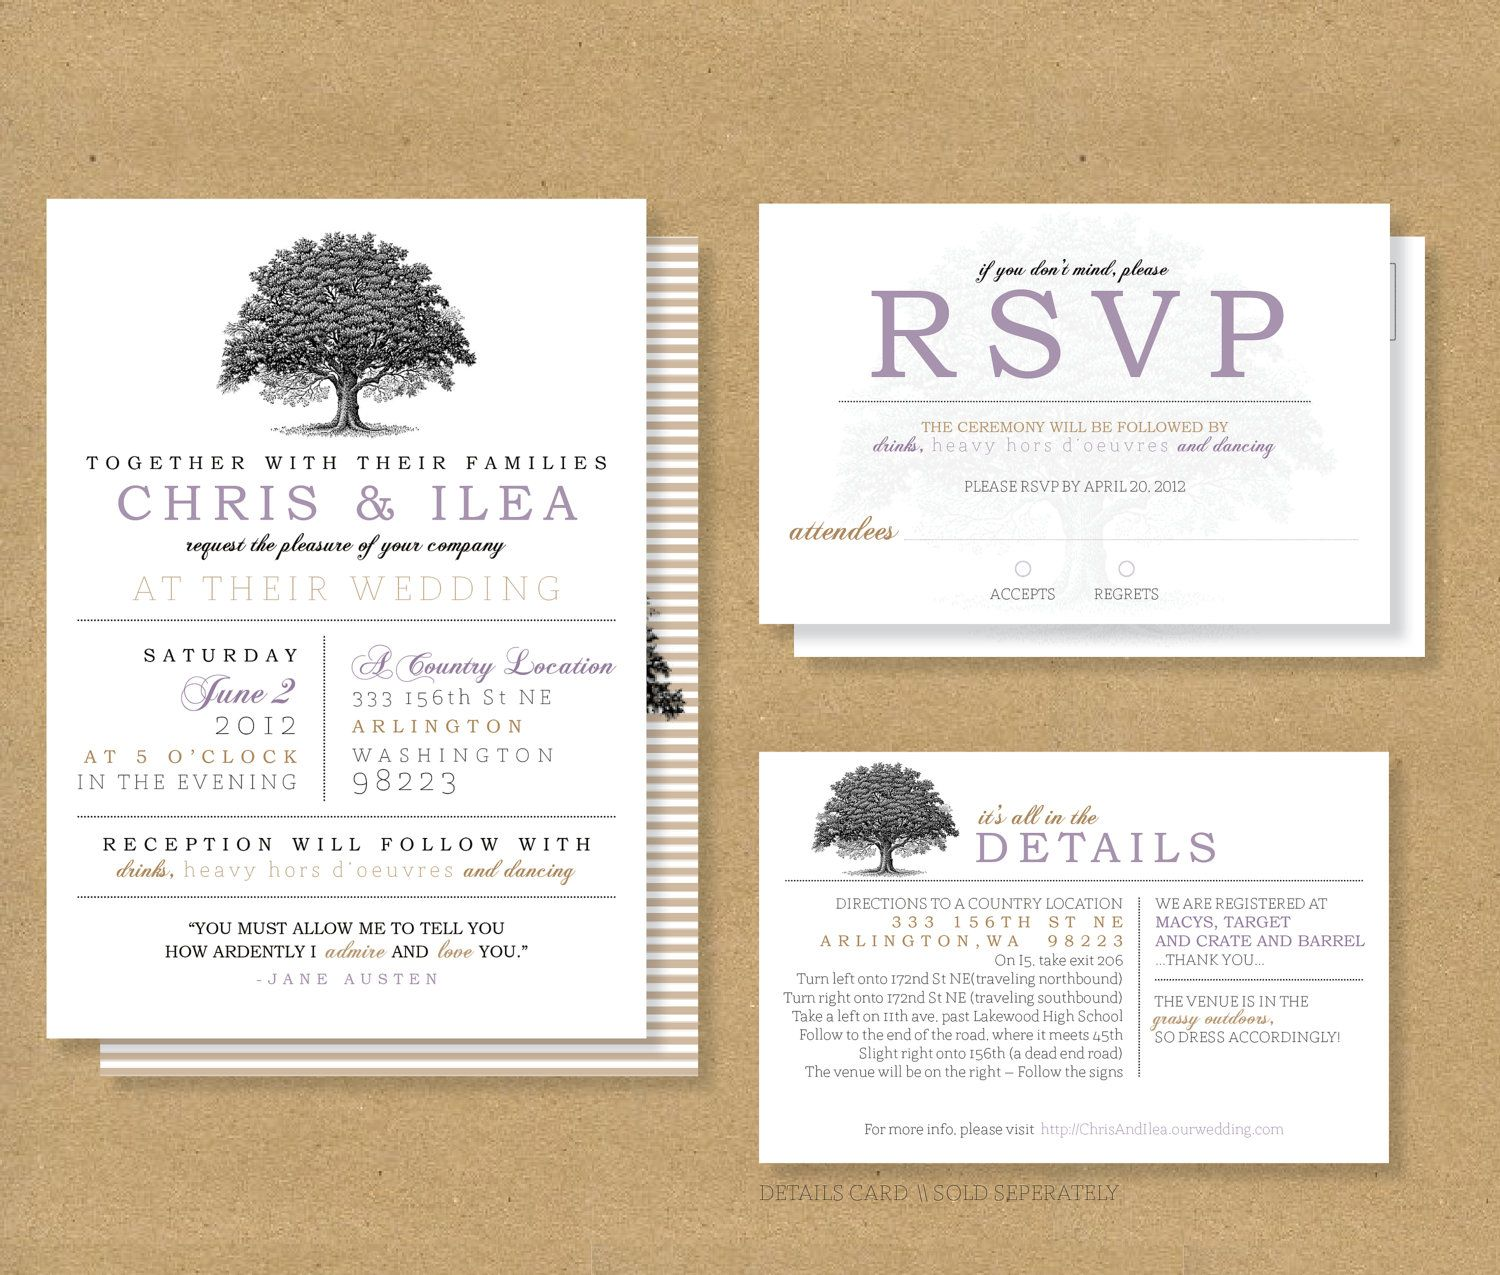 Wedding invitationwedding rsvp wording samples tips for Destination wedding invitation rsvp etiquette